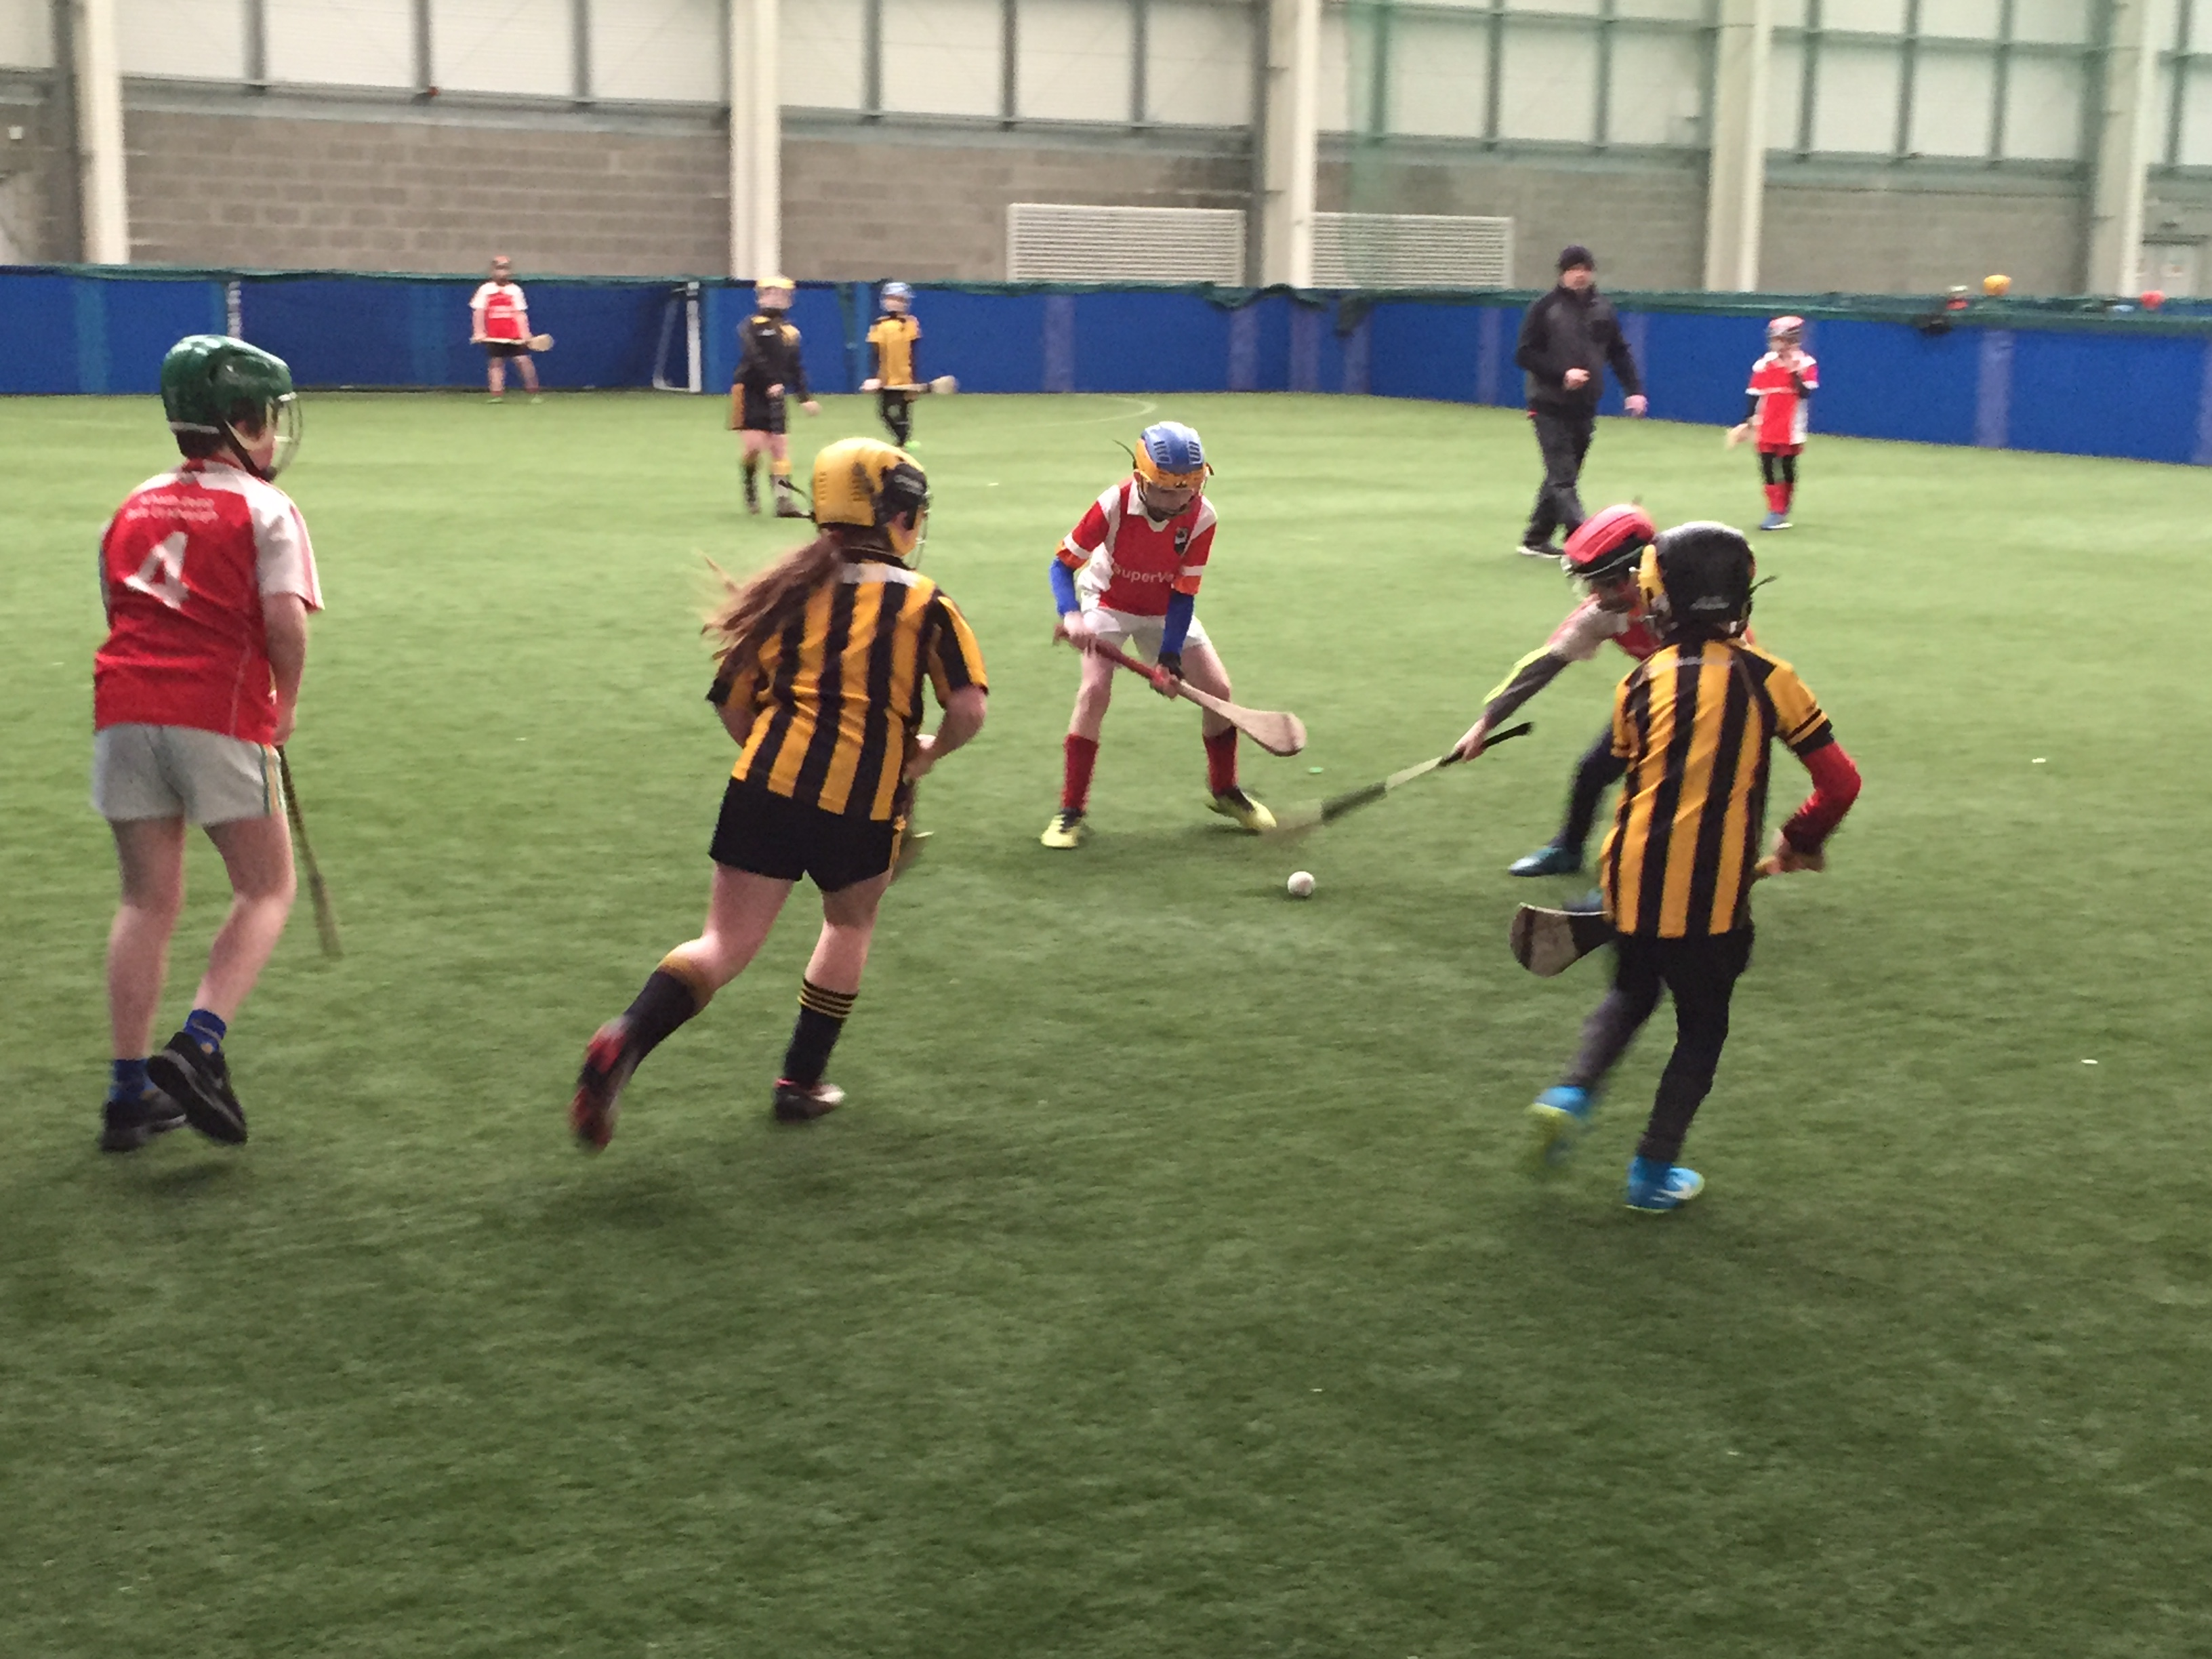 Ulster GAA's indoor hurling programme enables young Hurlers to enjoy the game